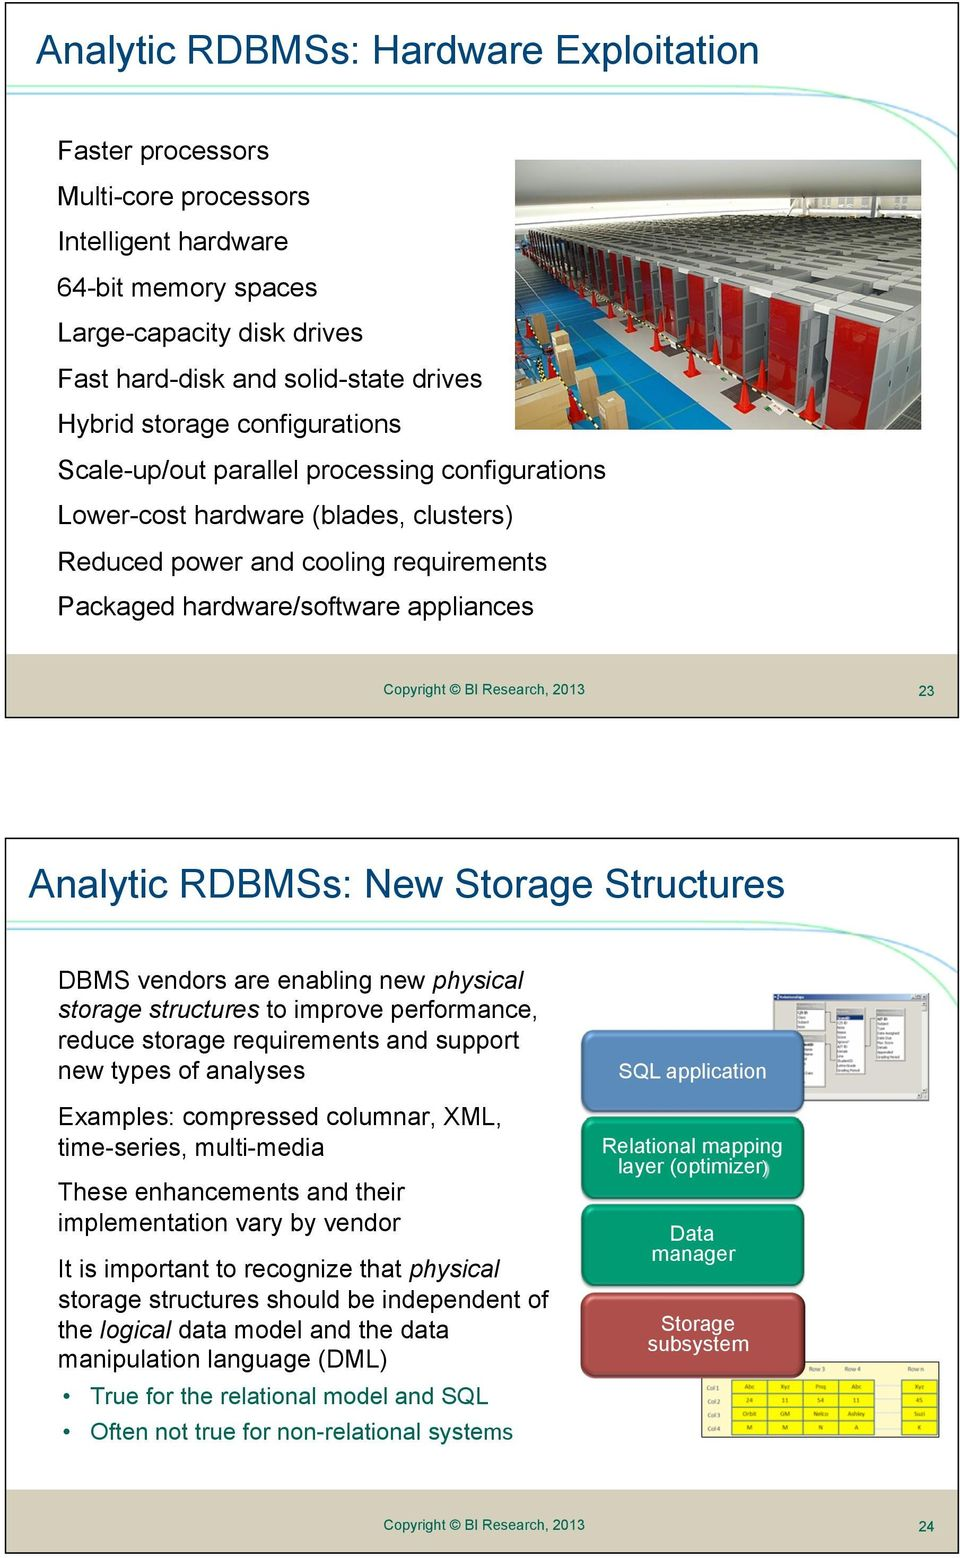 RDBMSs: New Storage Structures DBMS vendors are enabling new physical storage structures to improve performance, reduce storage requirements and support new types of analyses Examples: compressed